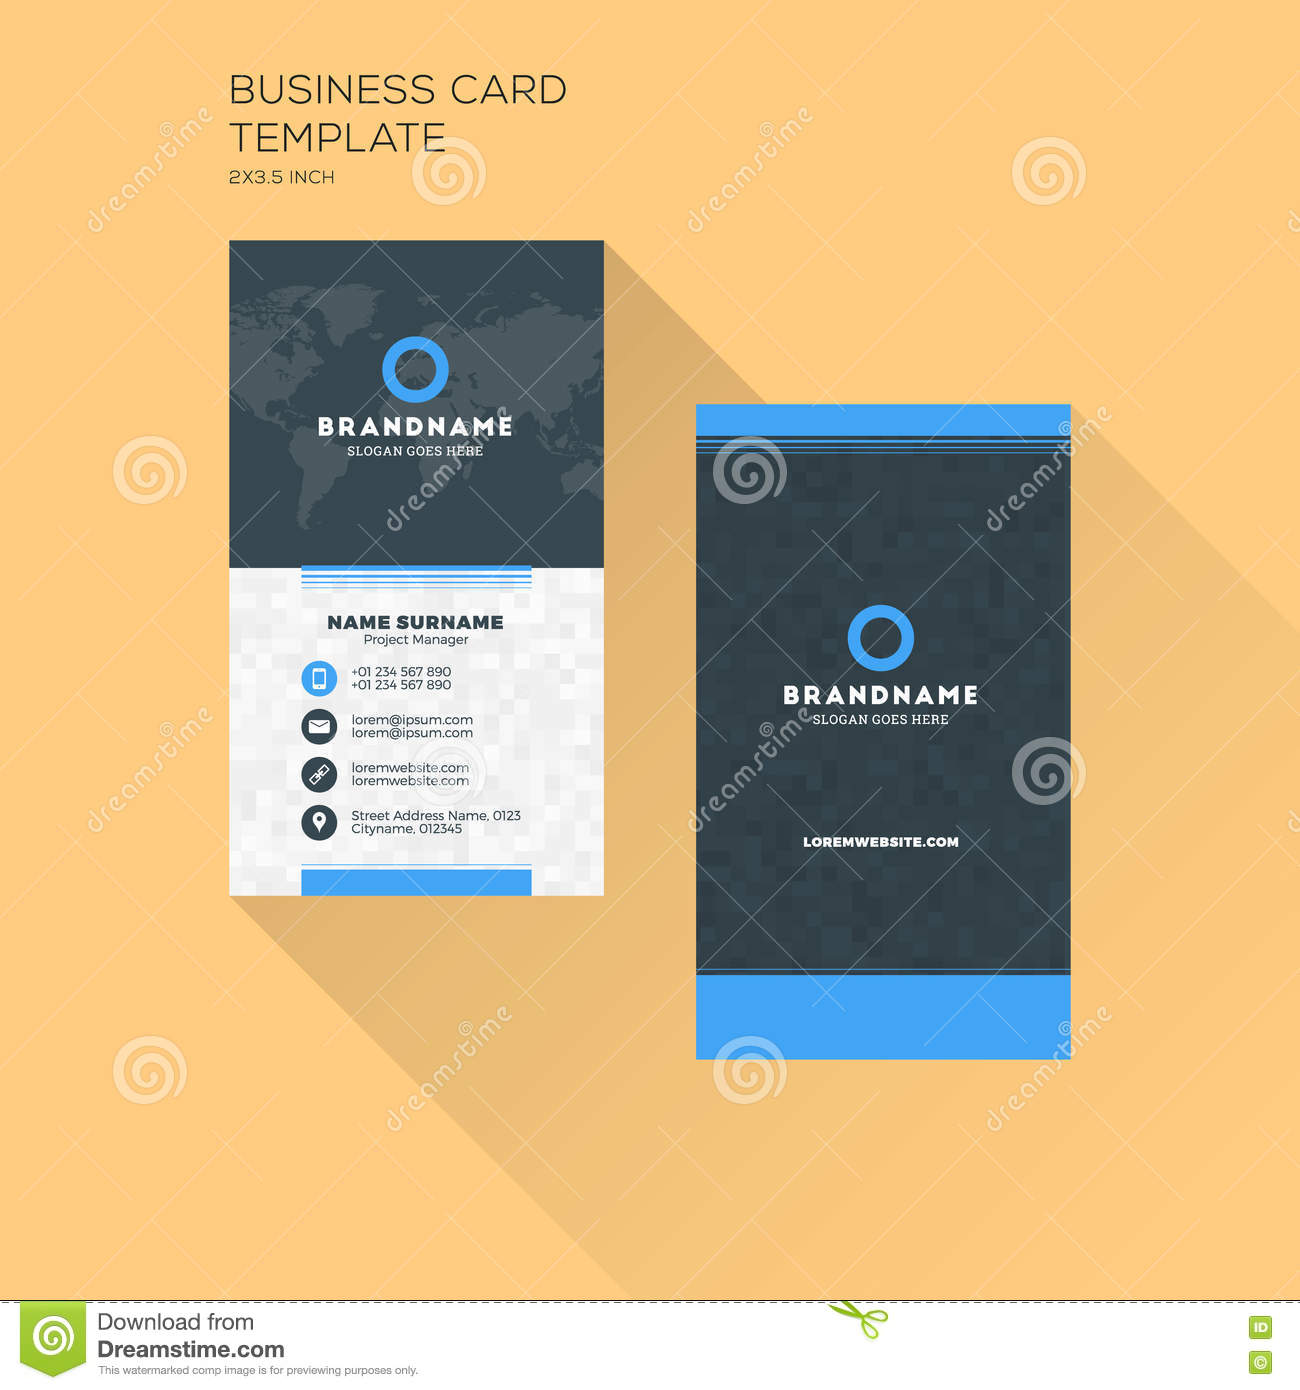 Vertical business card print template personal business card wi download comp cheaphphosting Gallery